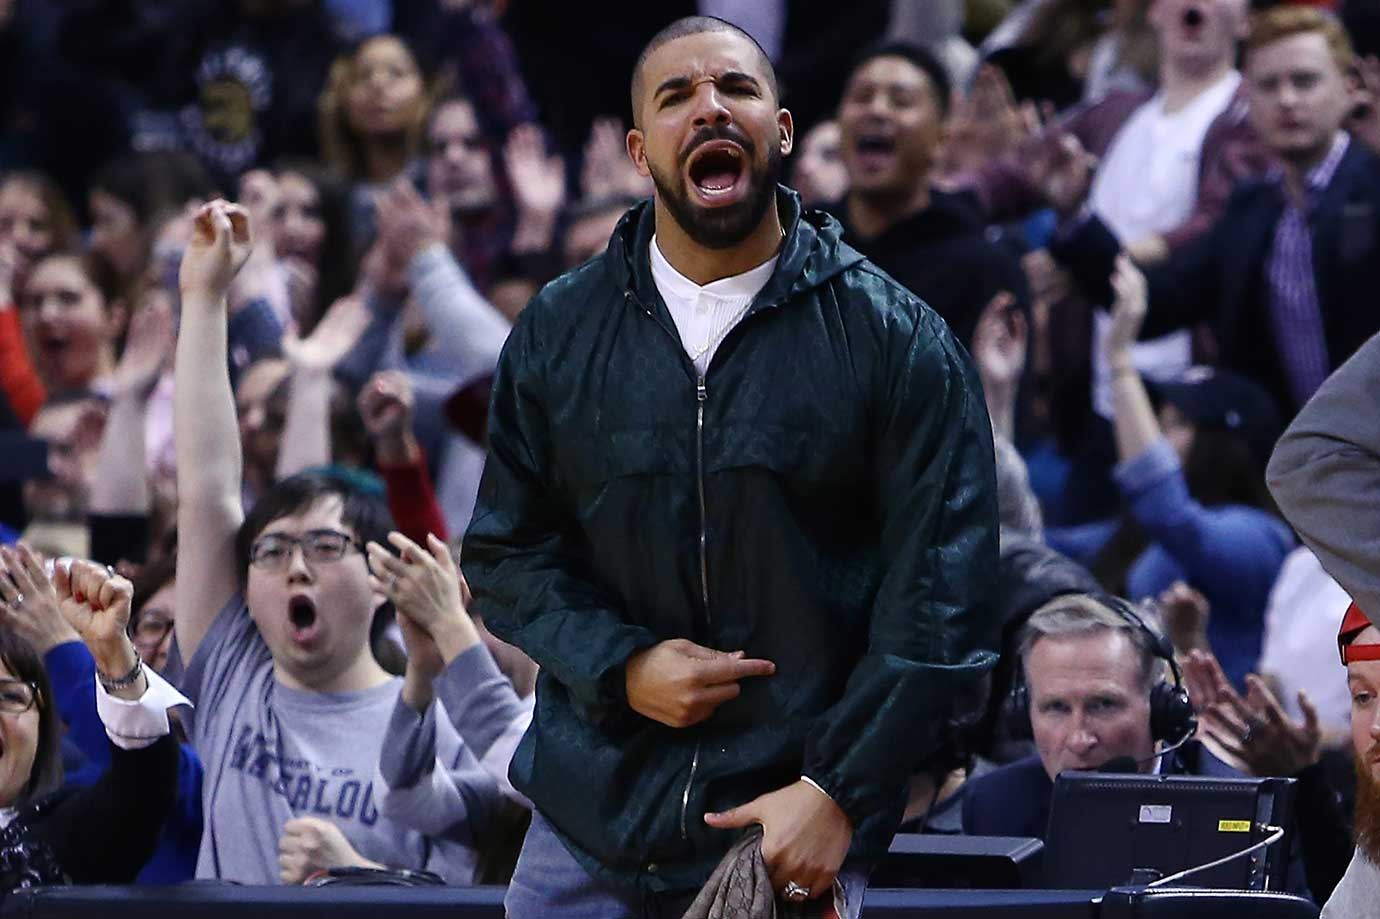 Here are some of the images that caught our eye on the sports night of March 4, beginning with Drake cheering the Toronto Raptors on to another victory.